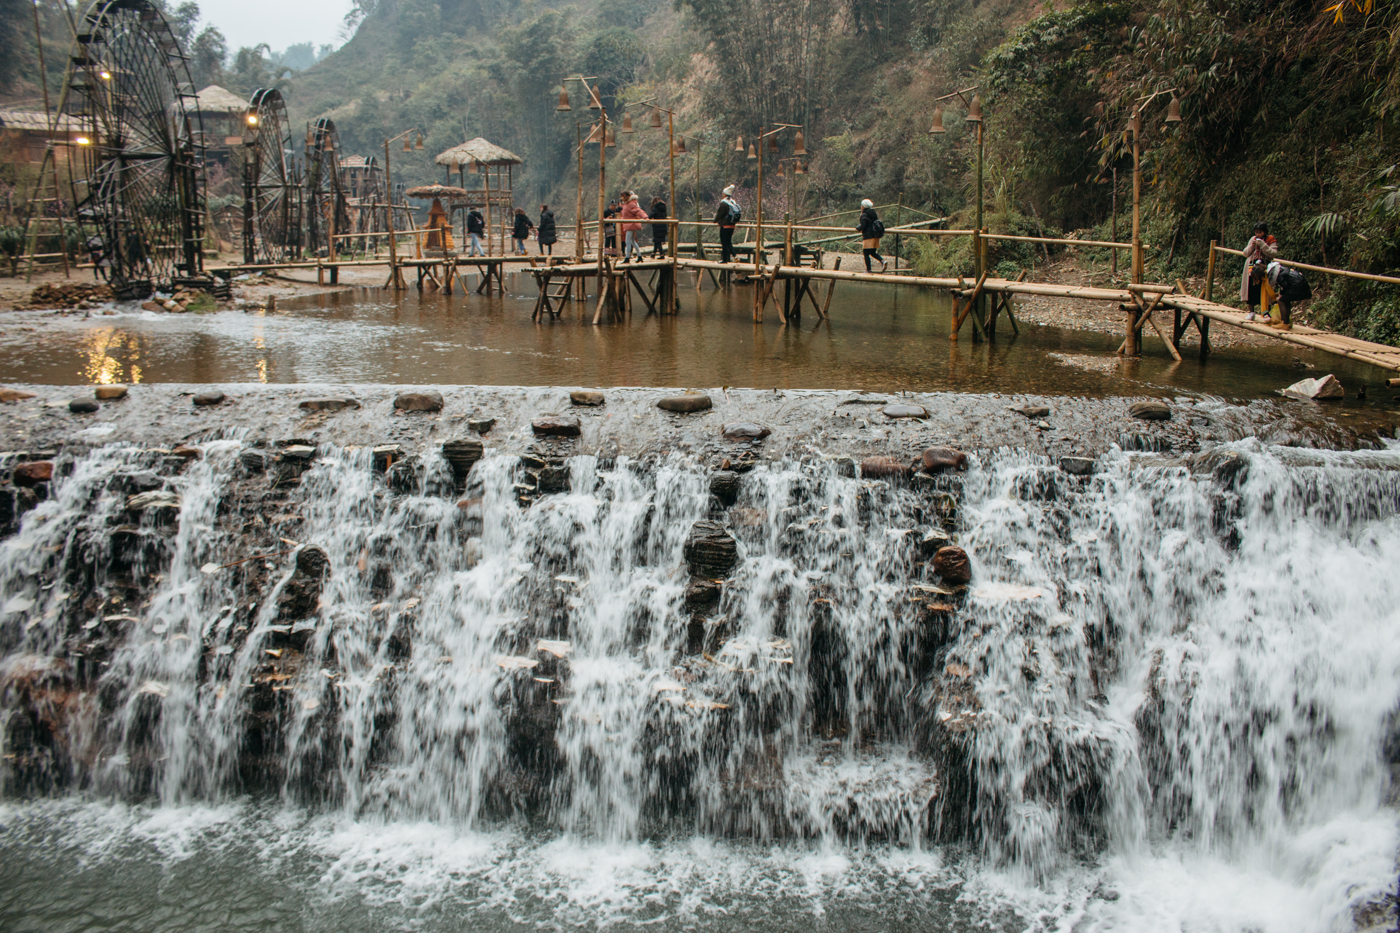 How to Spend 48 Hours in Sapa, Vietnam